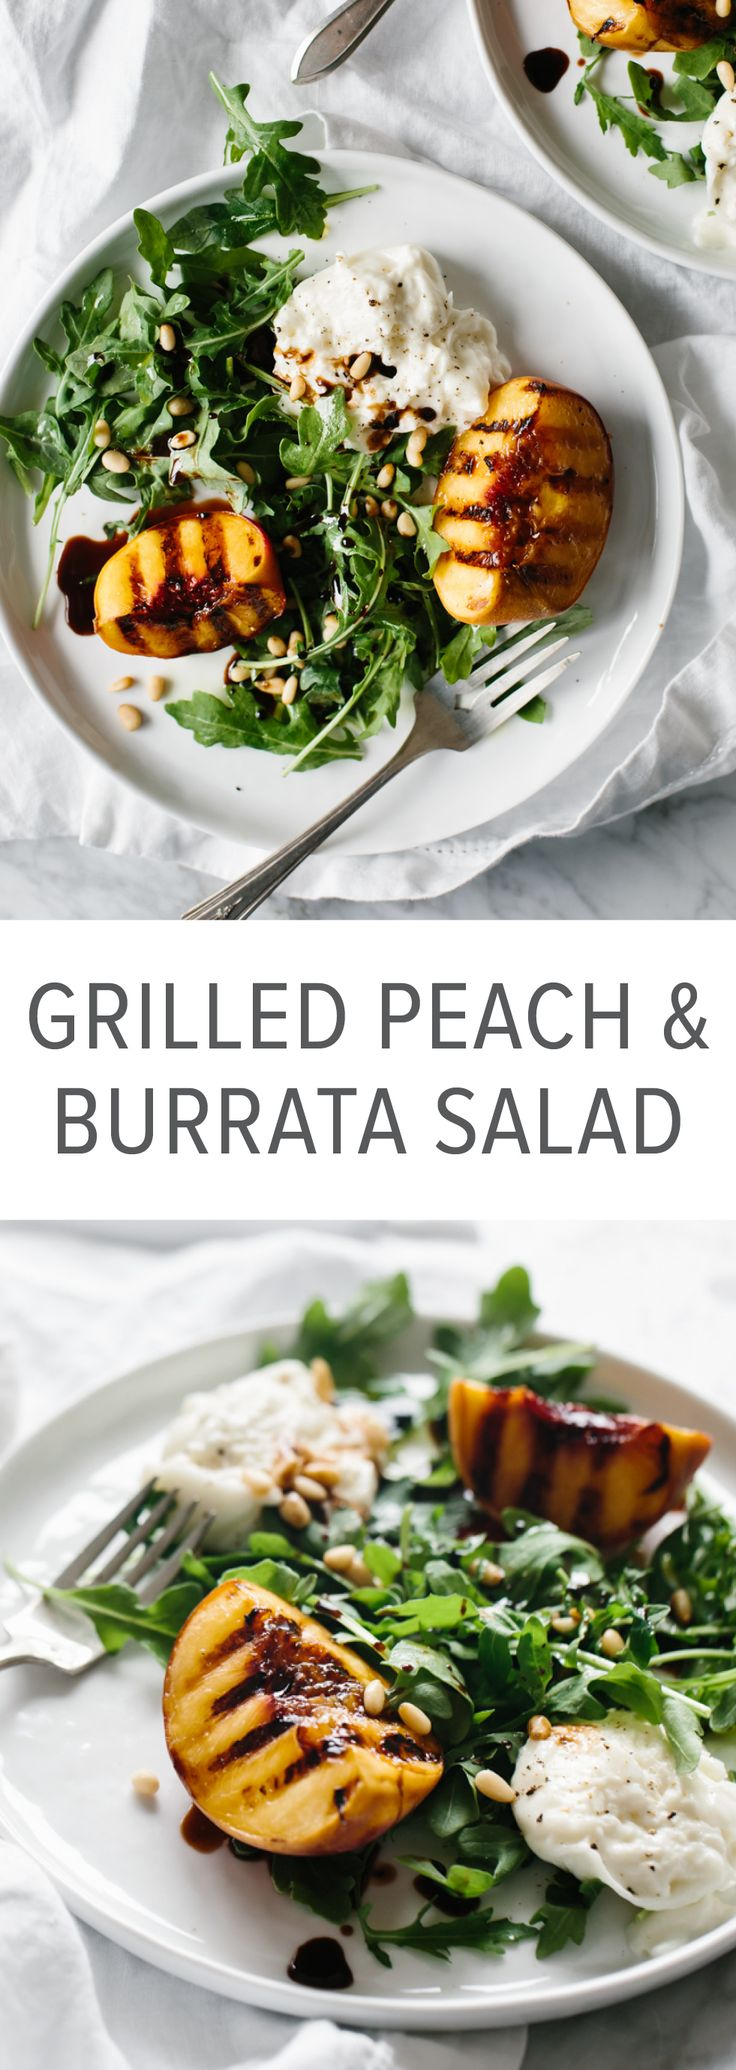 This grilled peach and burrata salad is summertime on a plate. The mix of grilled peaches, arugula, burrata, pine nuts and balsamic is the perfect summer salad recipe.